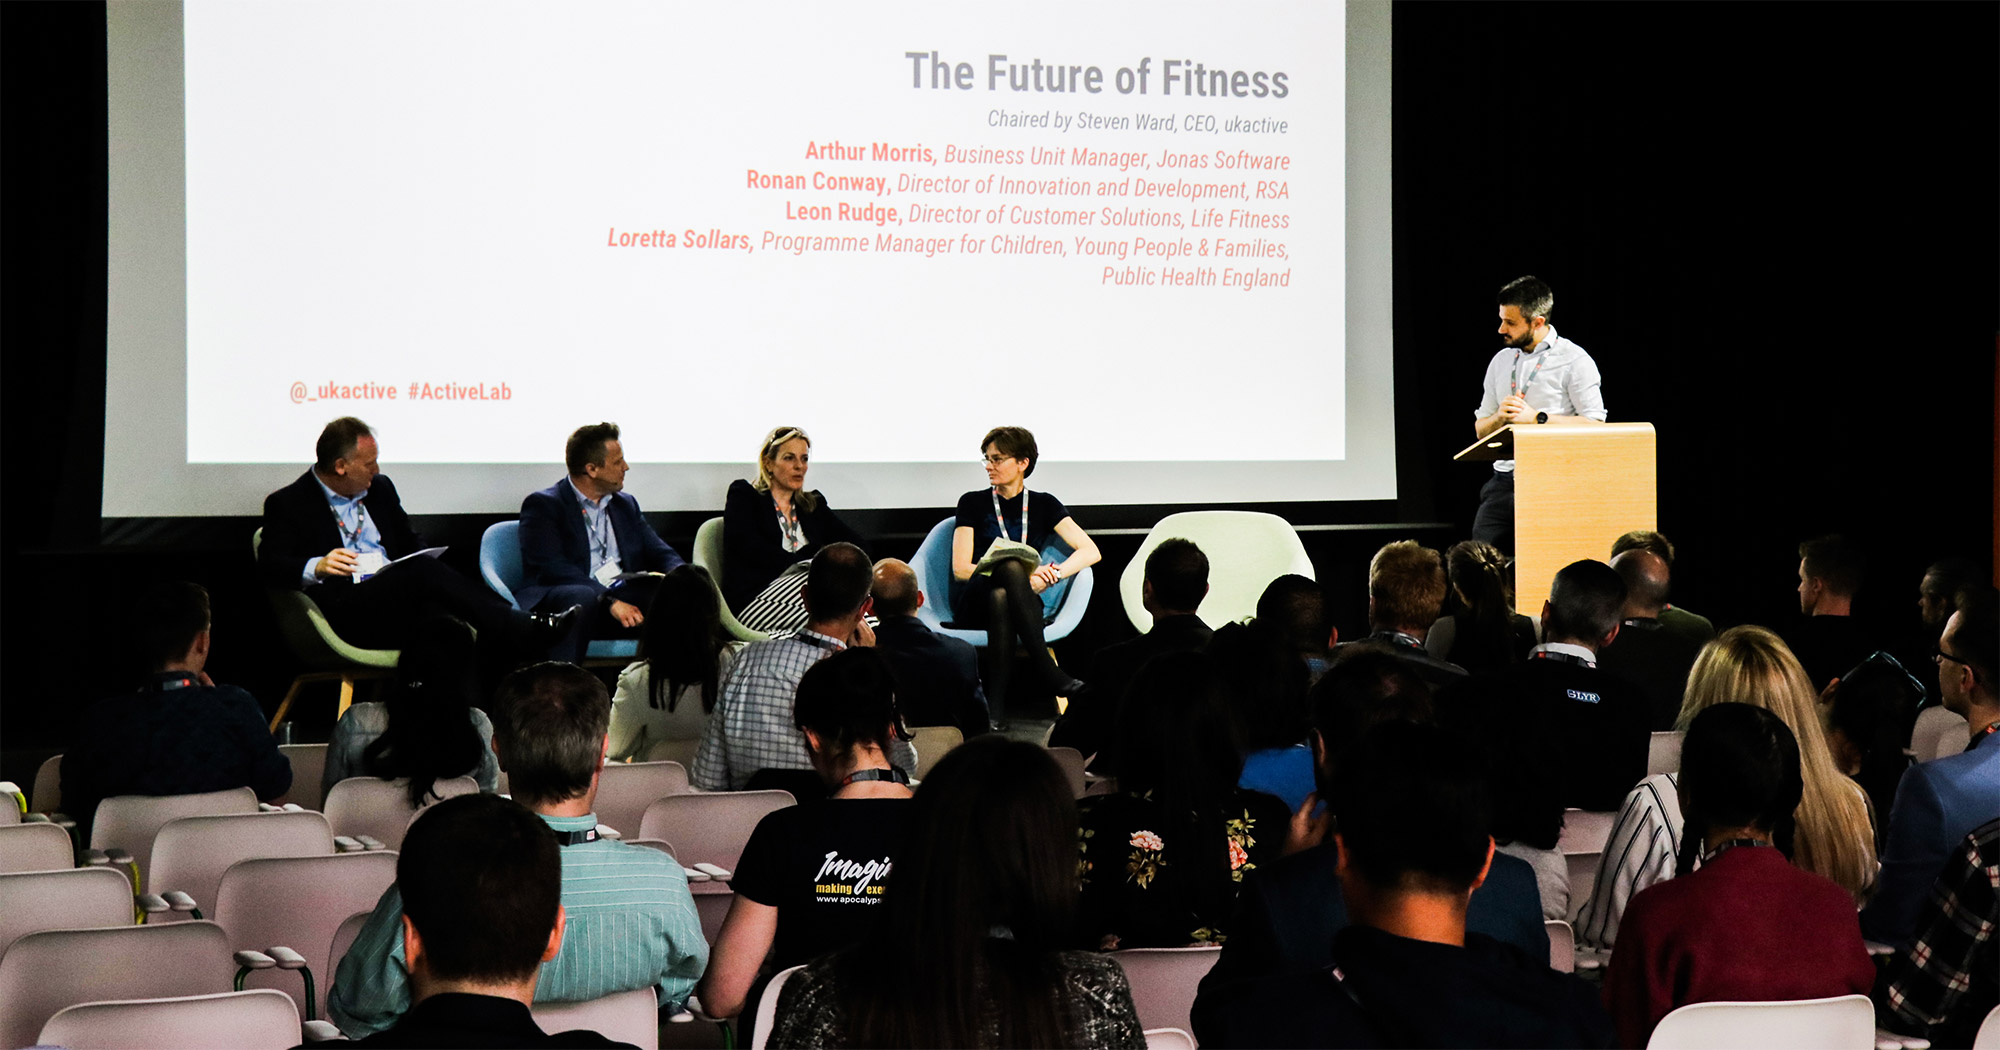 ukactive CEO Steven Ward: Fit-Tech can be the cradle to grave game-changer for public health